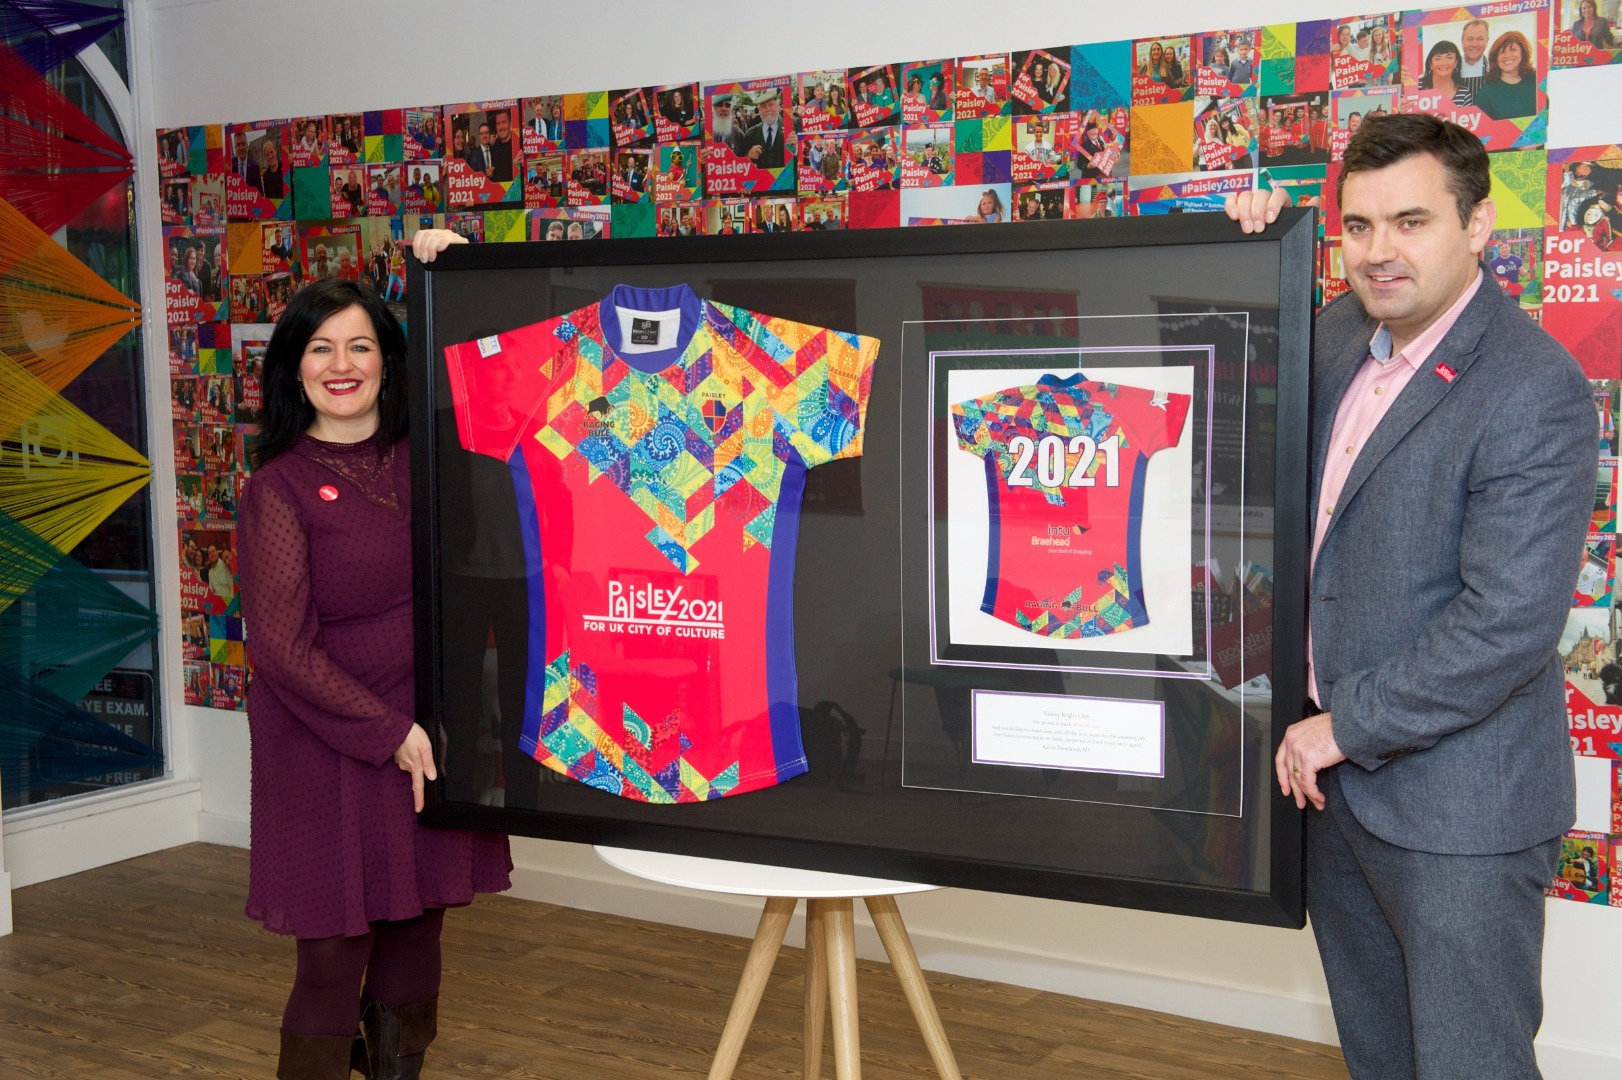 MP Gavin Newlands presents framed rugby shirt to Paisley 2021 bid team